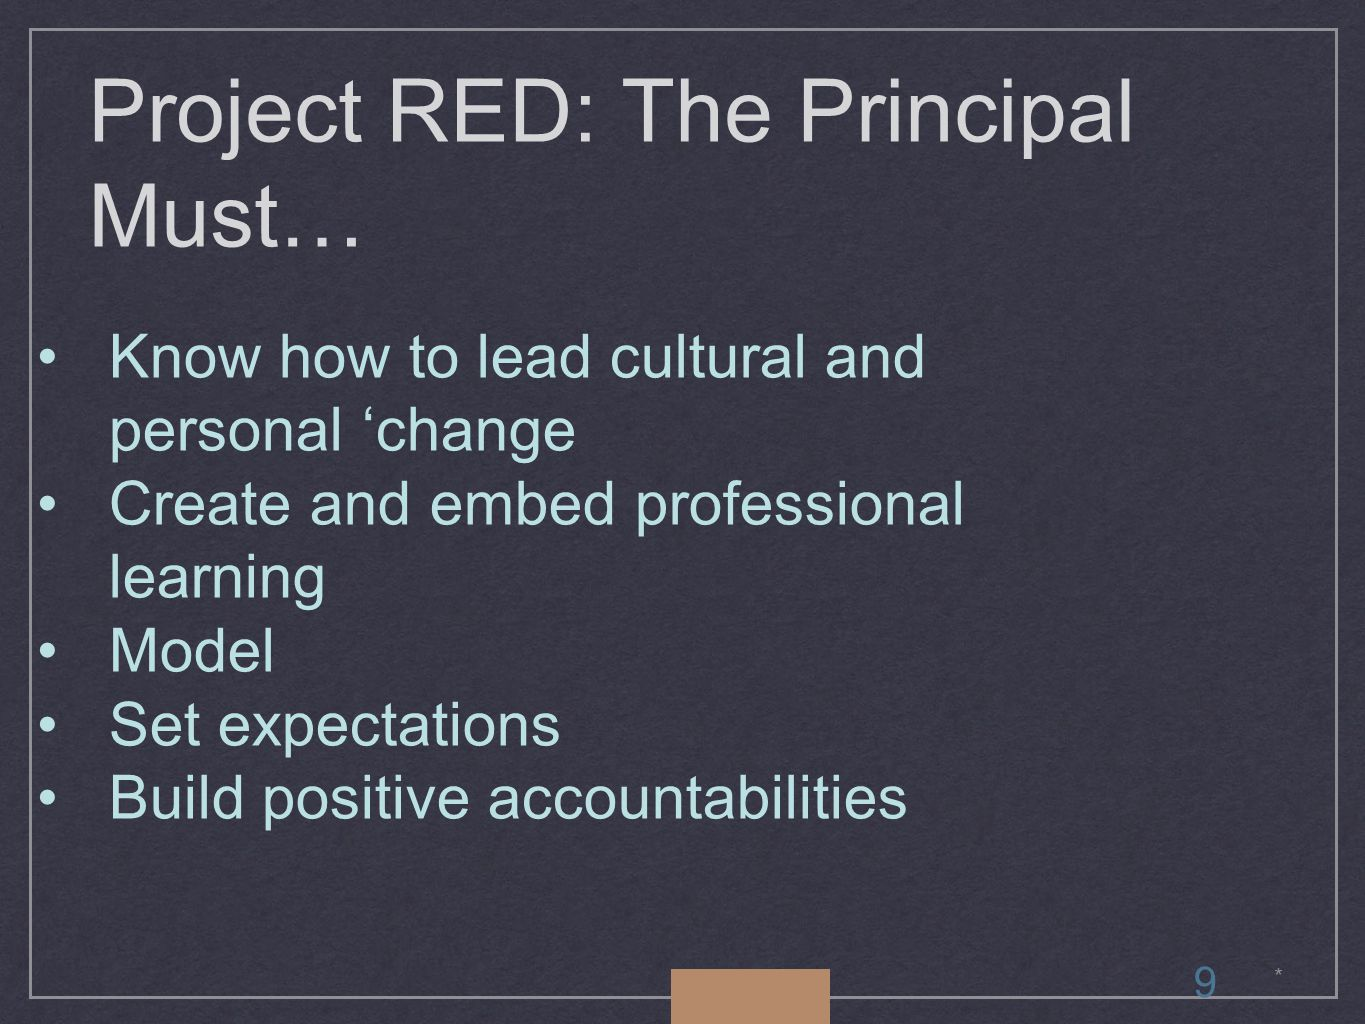 * Project RED: The Principal Must… Know how to lead cultural and personal 'change Create and embed professional learning Model Set expectations Build positive accountabilities 9